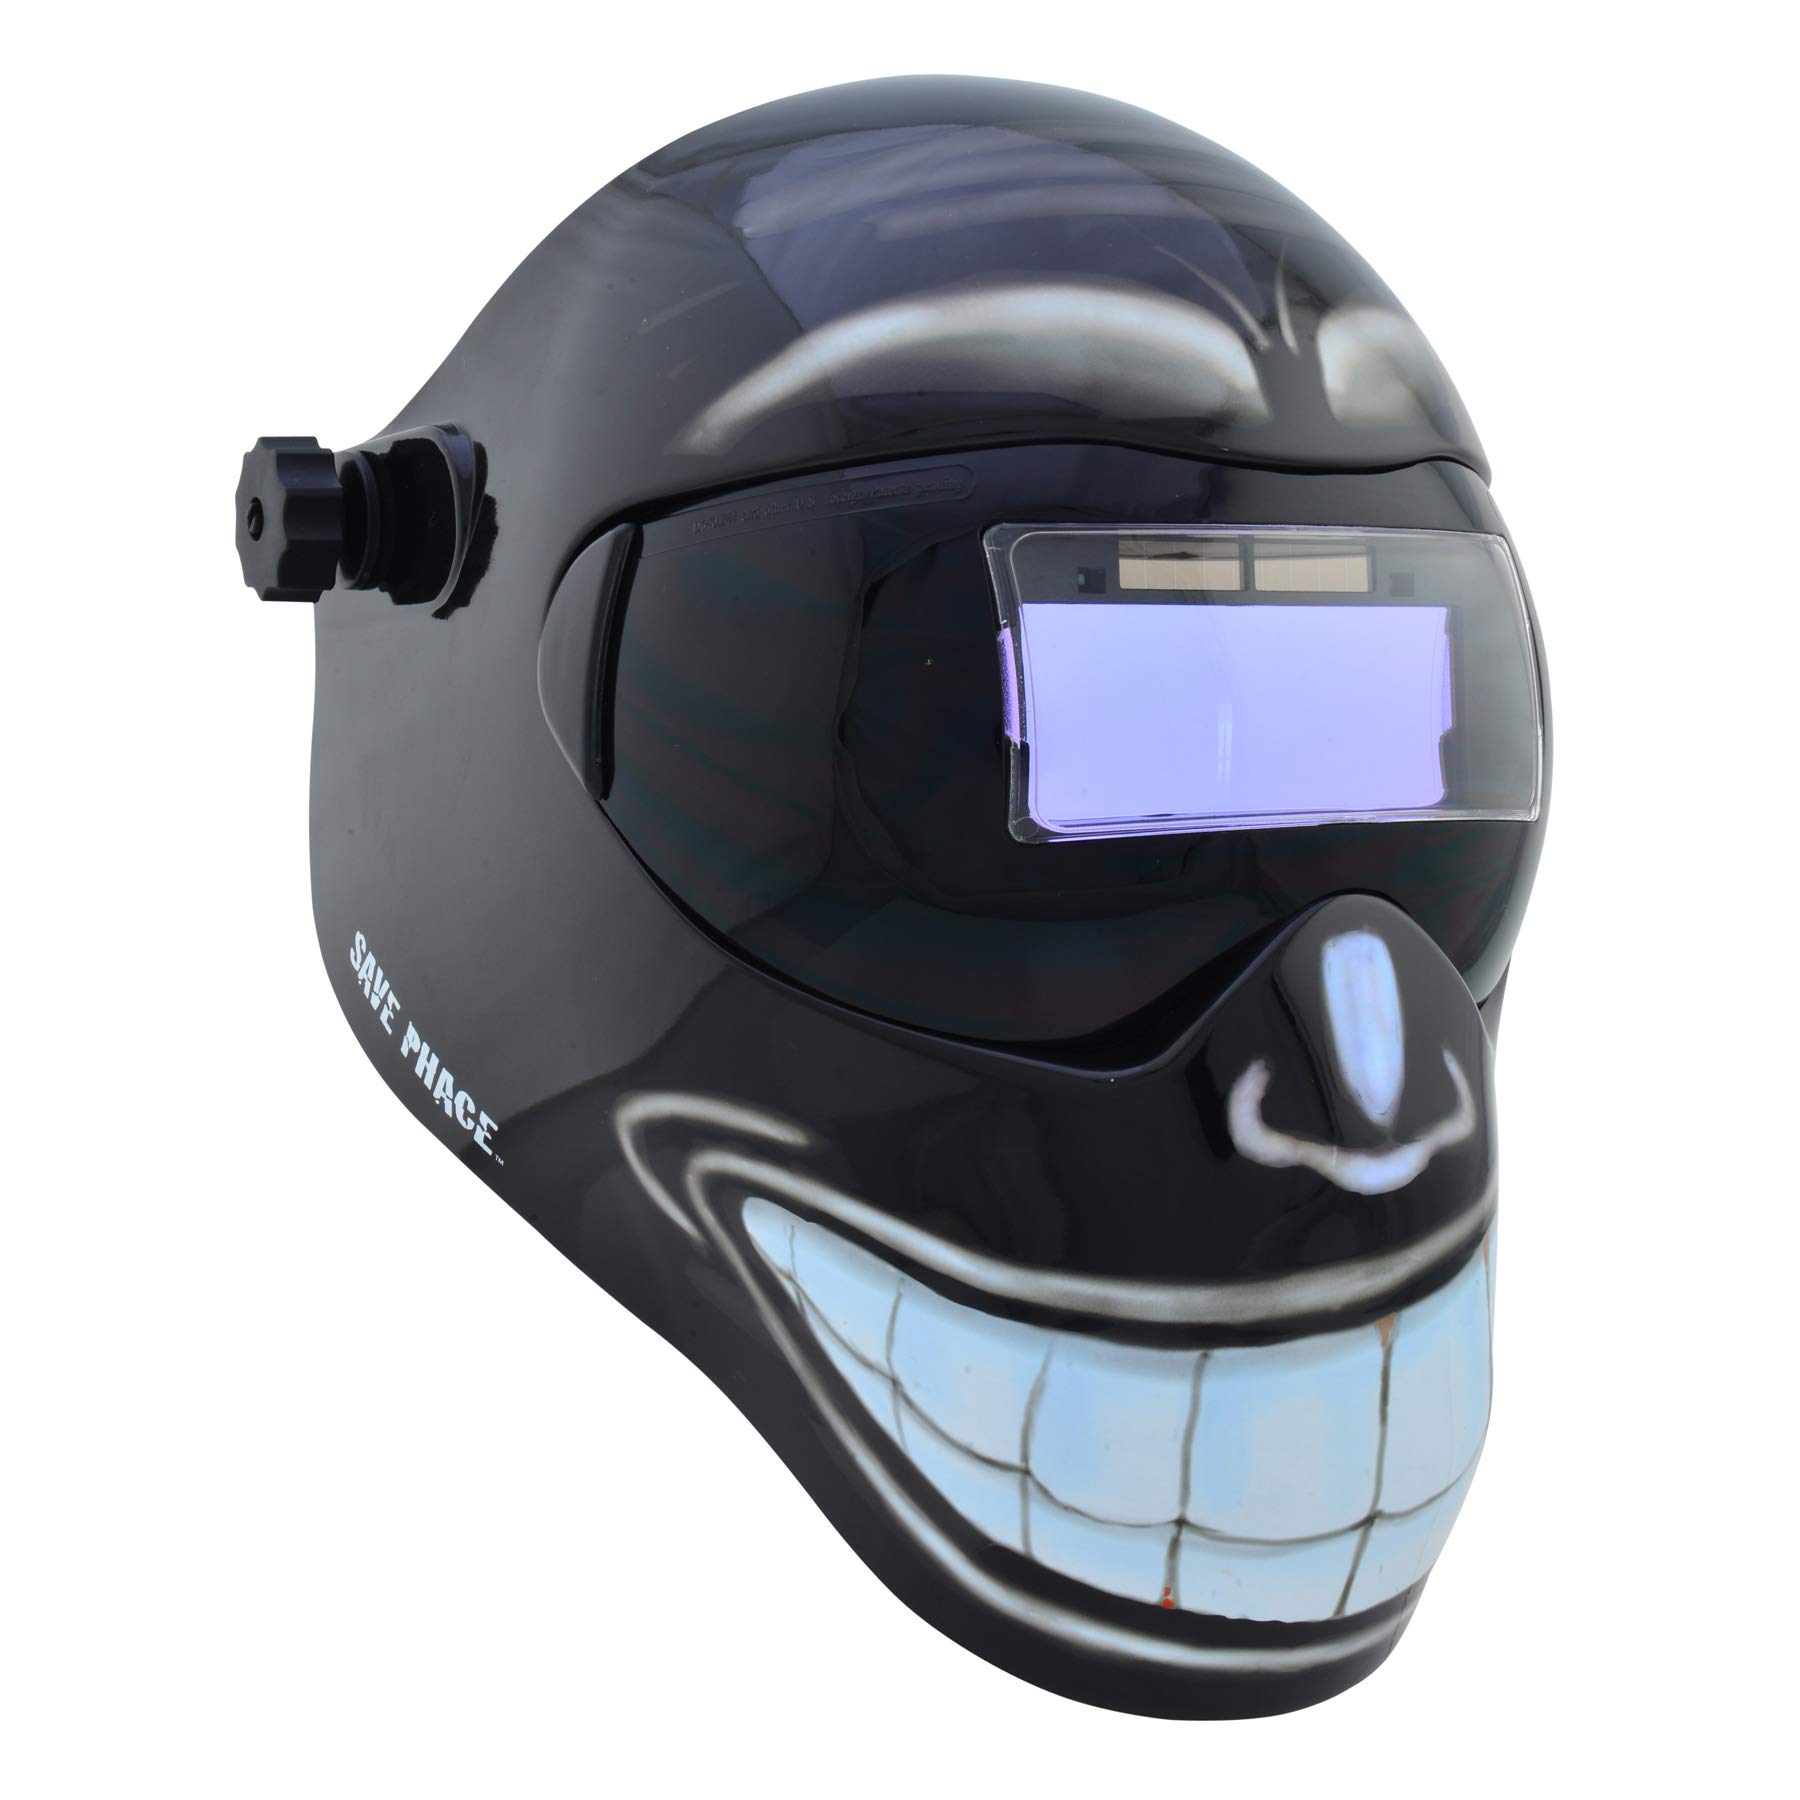 Save Phace 3012626 F - Series Smiley Auto Darkening Welding Helmet by Save Phace (Image #2)